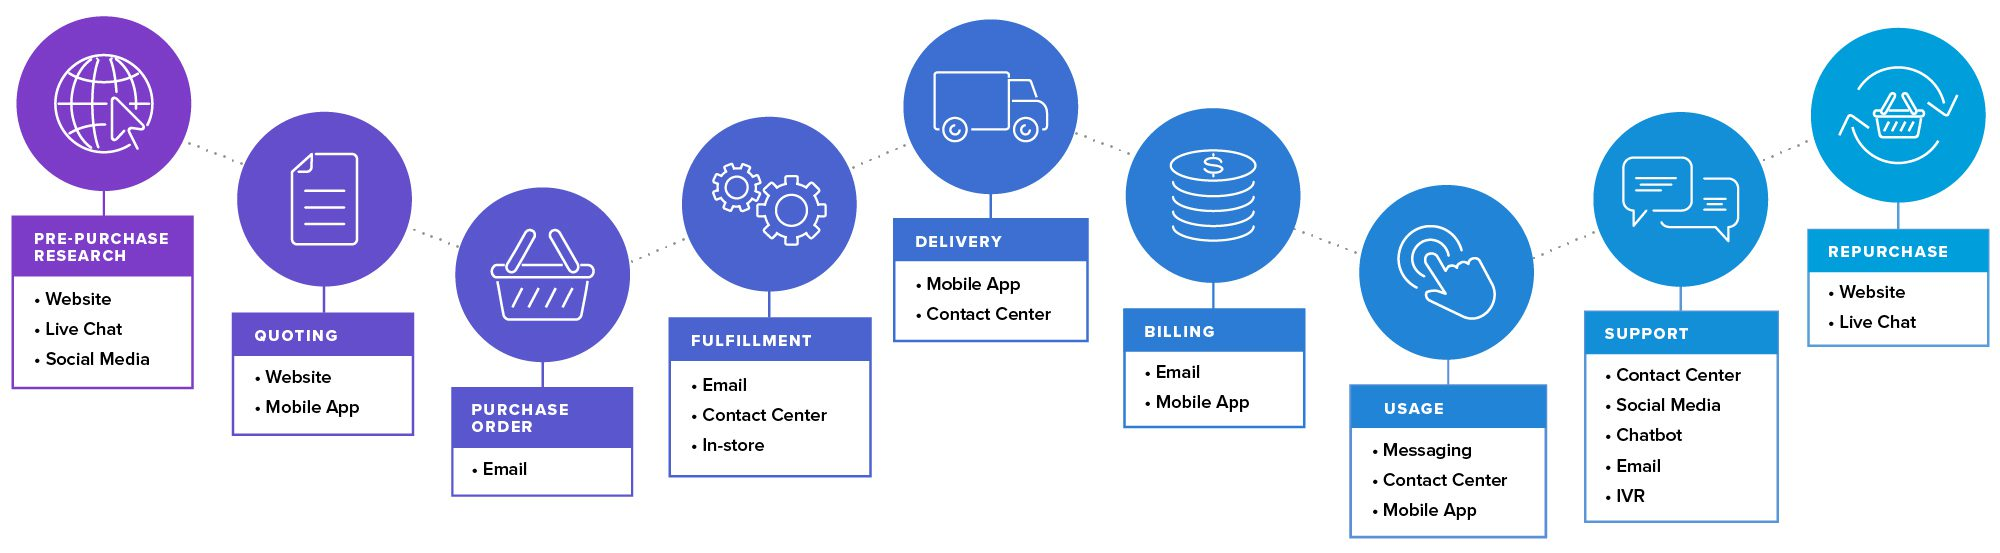 Customer journey map for contact centers